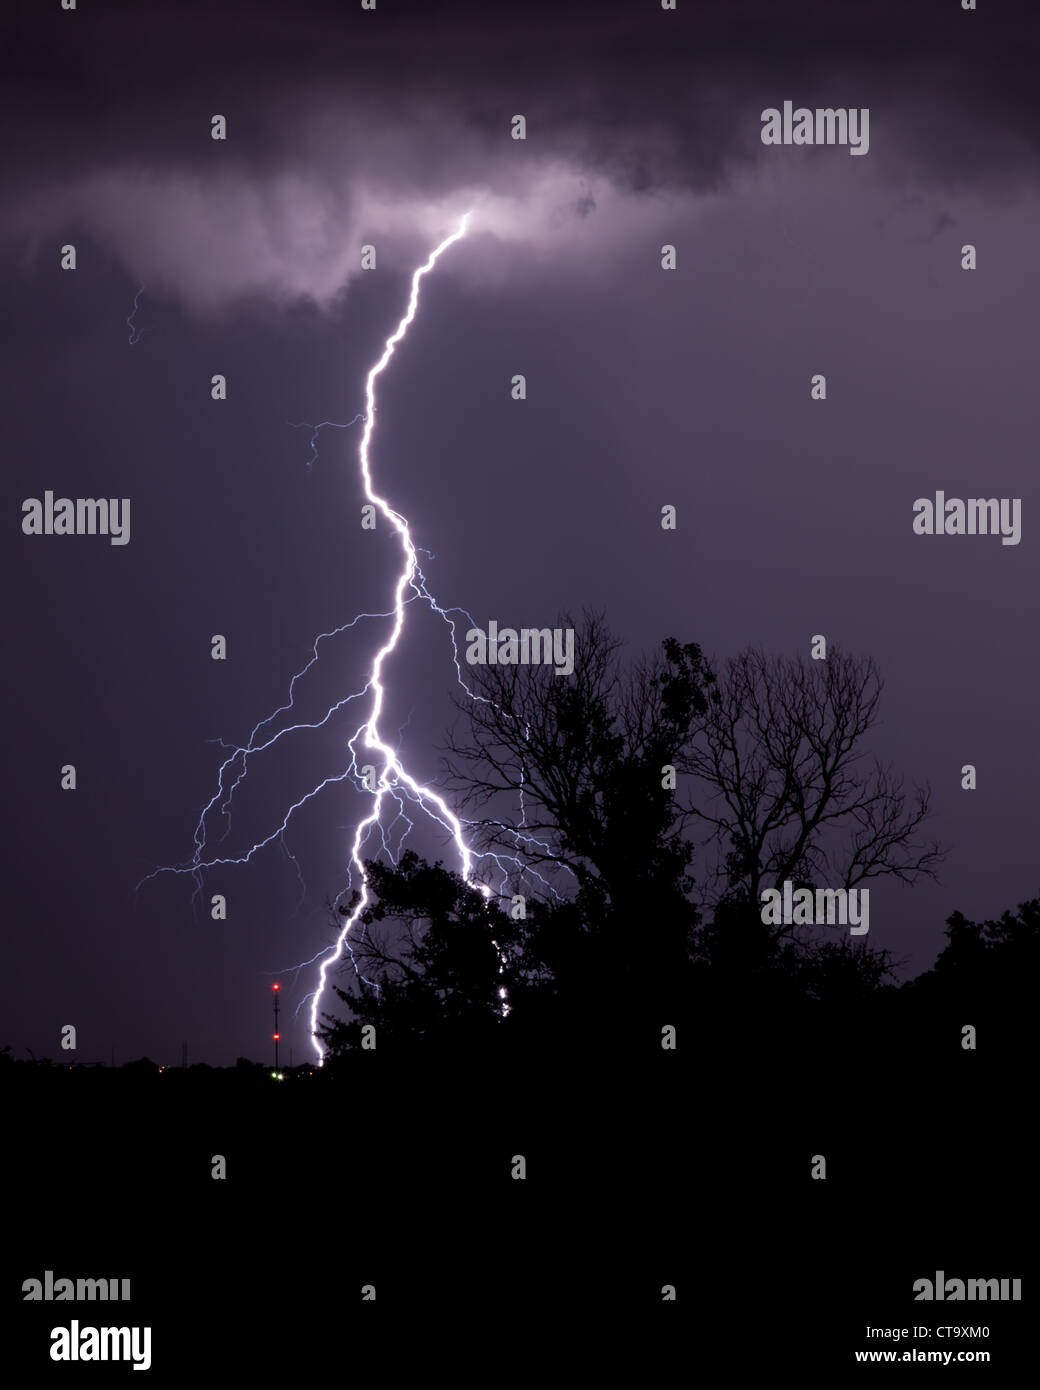 Lightning strike - Stock Image